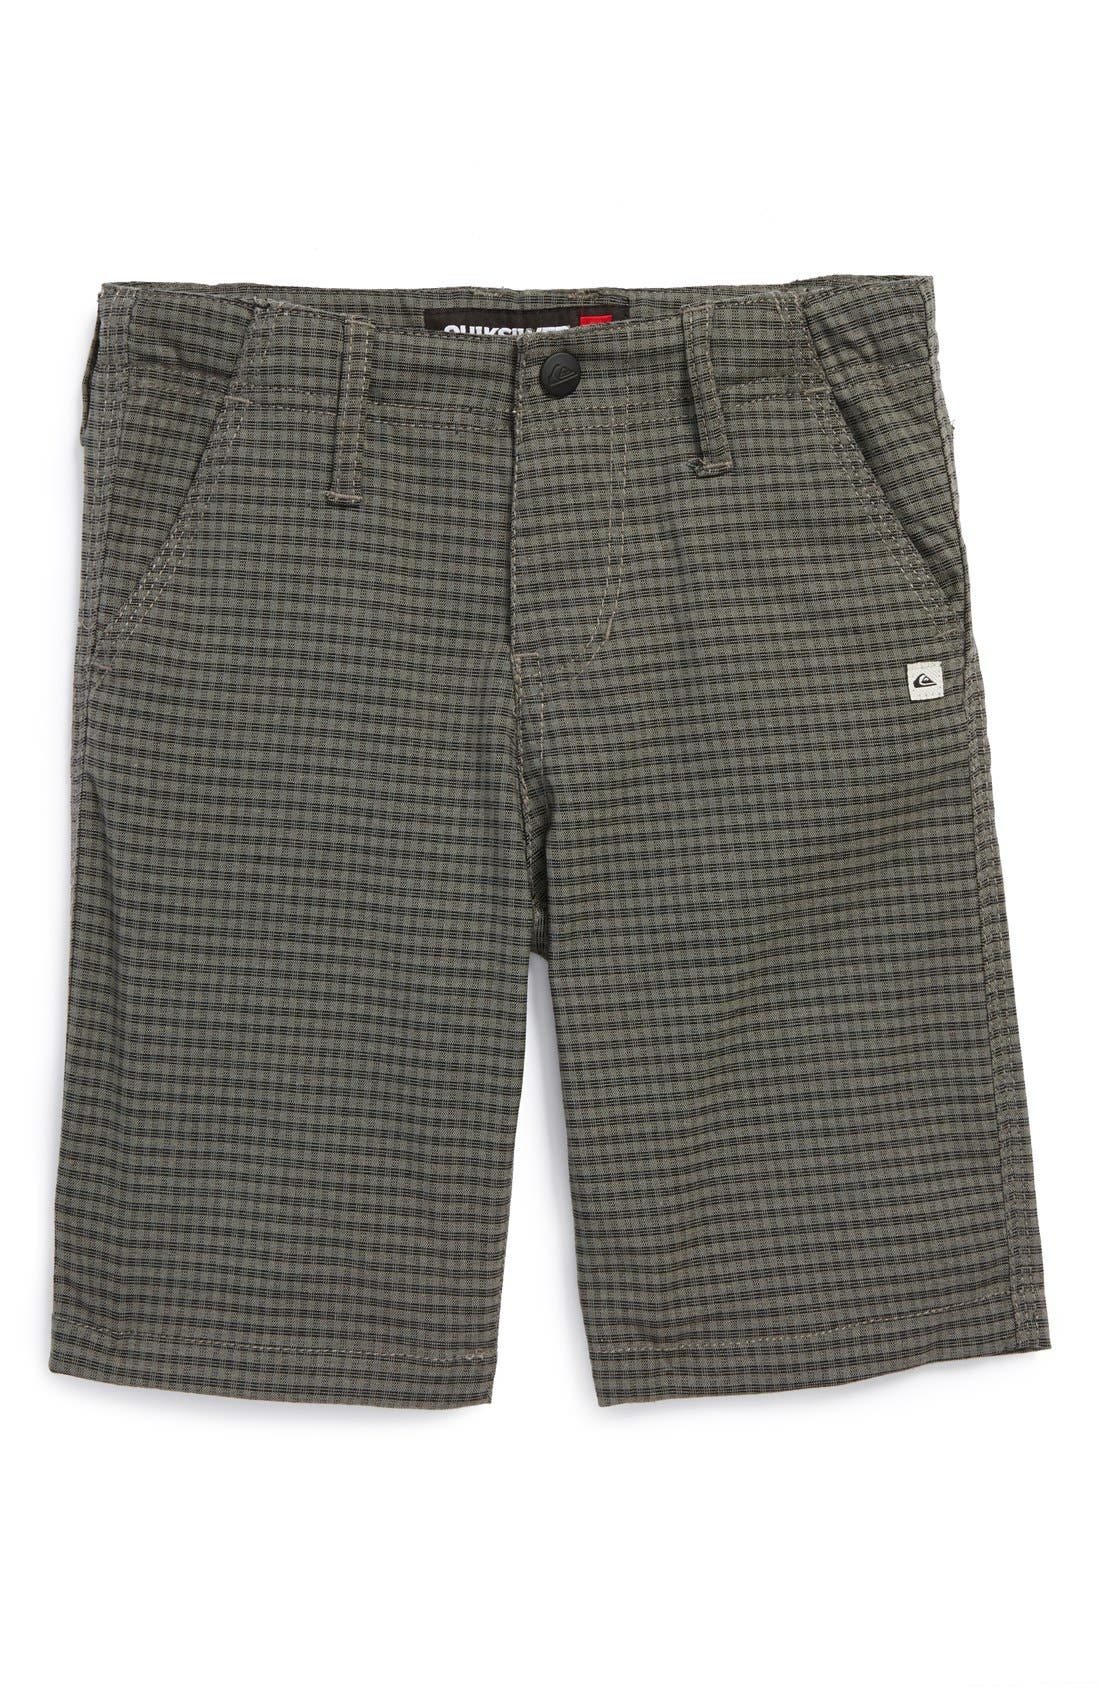 Alternate Image 1 Selected - Quiksilver 'Stamp It' Shorts (Toddler Boys)